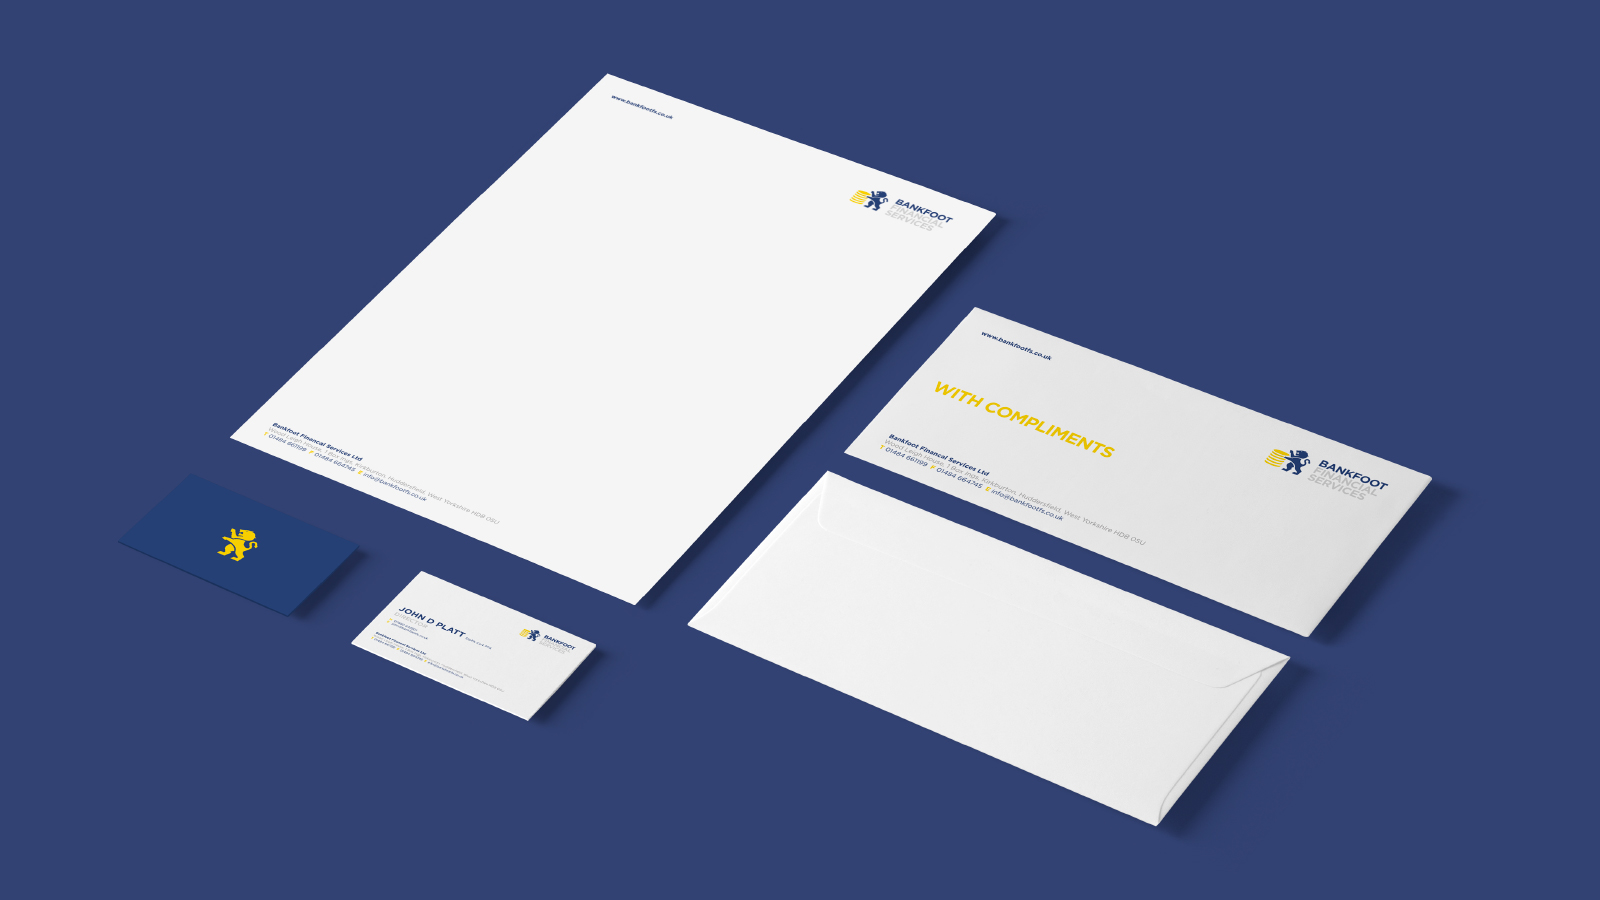 Bankfoot Financial Services Branding Design